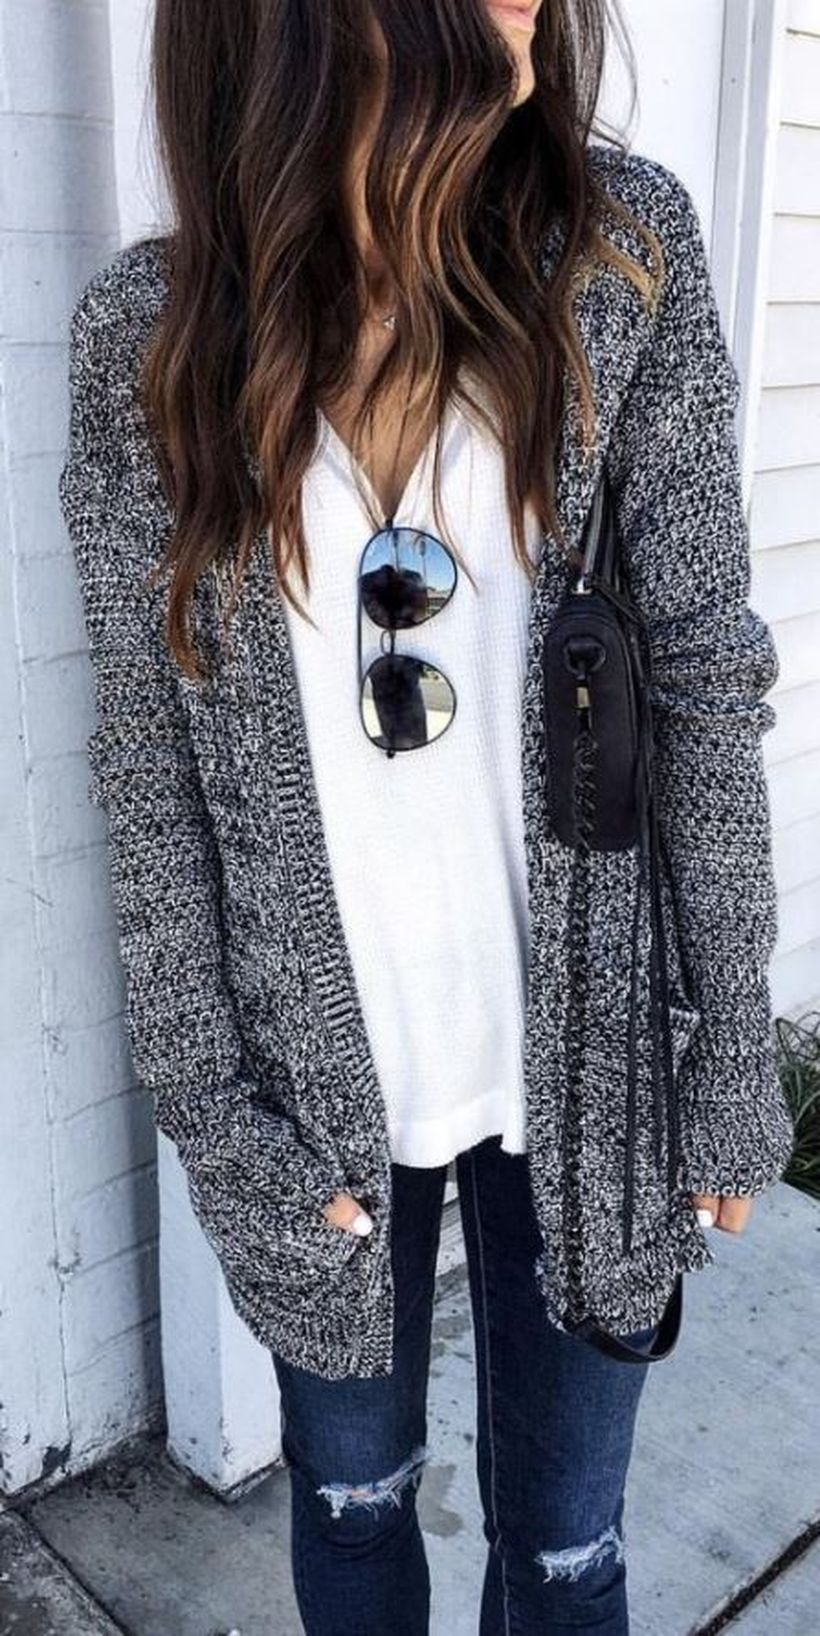 3a48b7591cb5f 25 Fall Outfit Ideas You Should Own | Women's fashion | Fashion ...